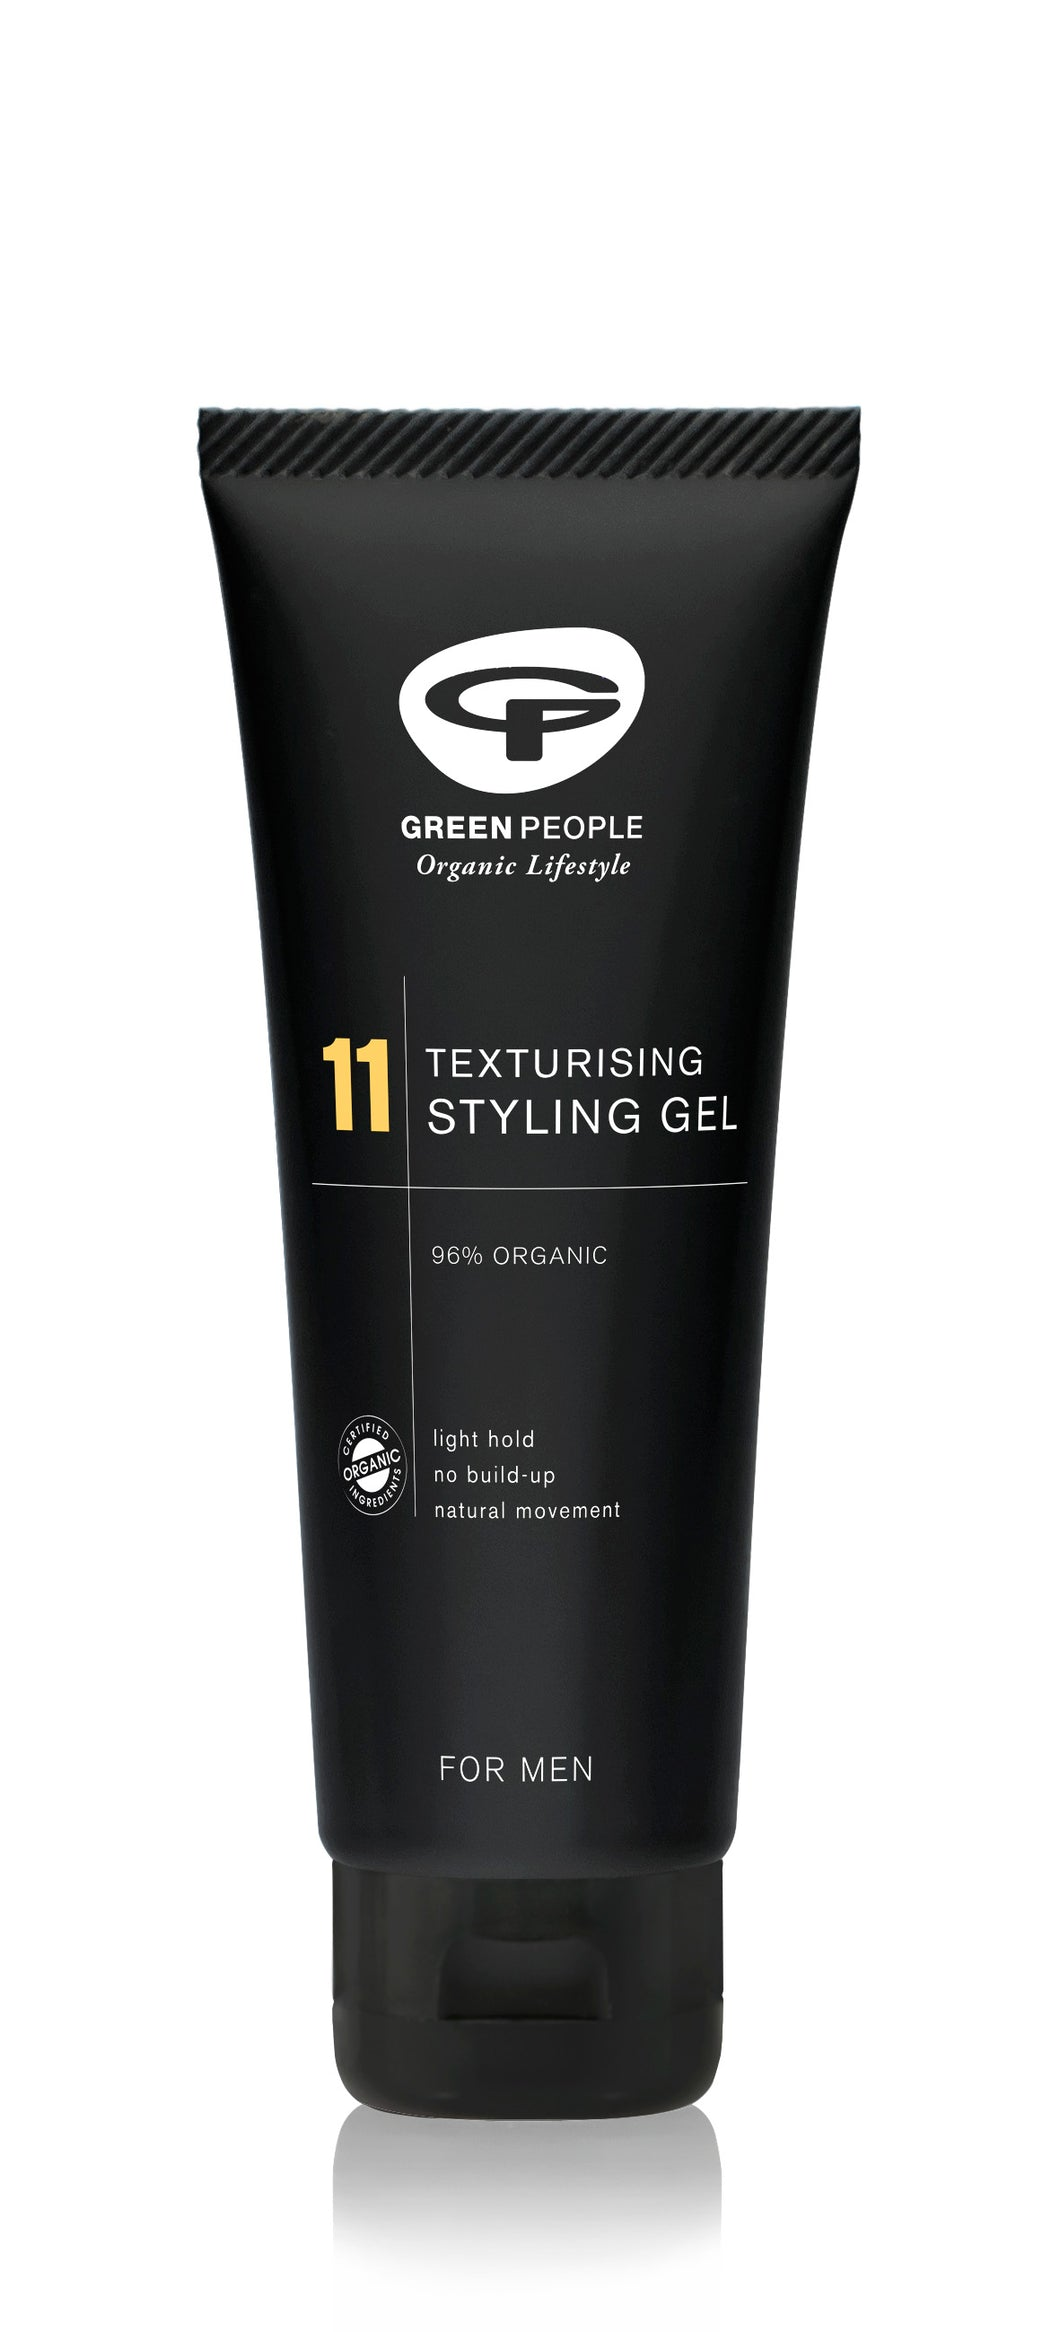 Green People No. 11 Texturising Styling Gel